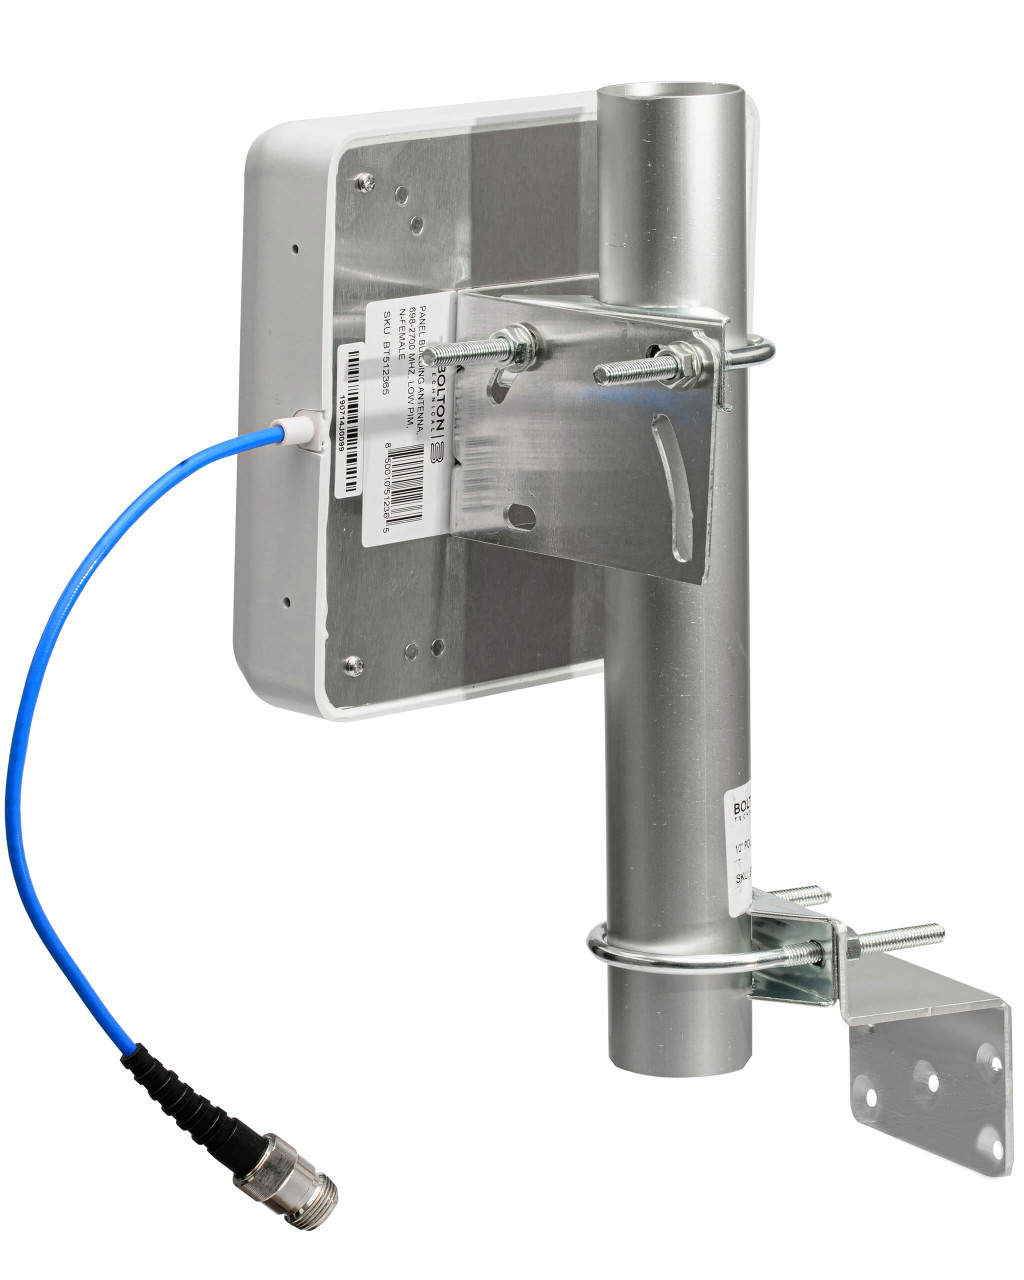 The Outdoor Board - Outdoor Wall Mount Antenna